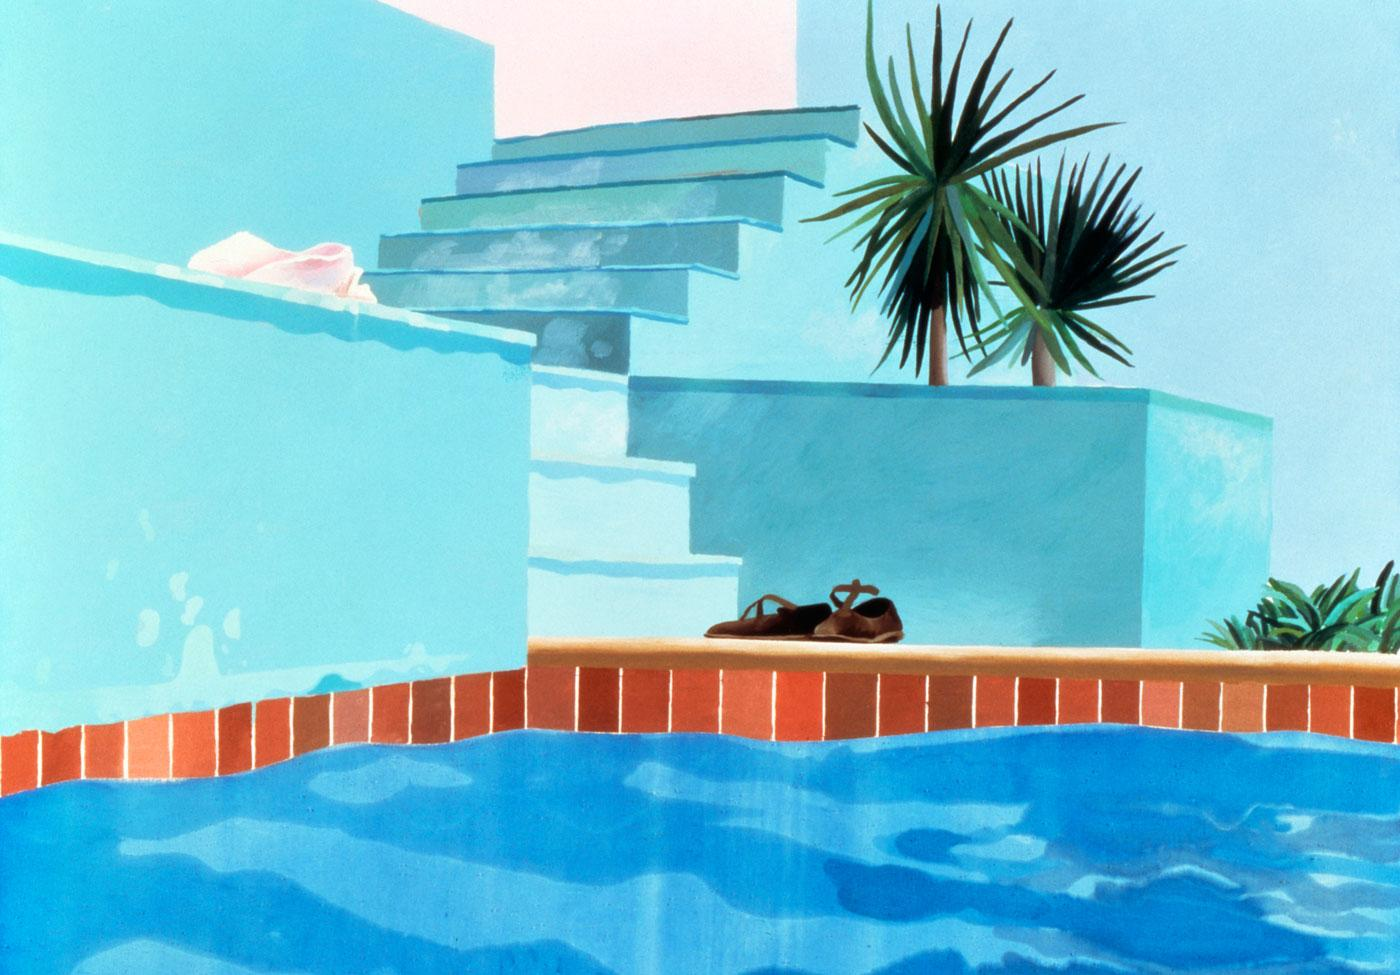 Pool and Steps, Le Nid du Duc by David Hockney, 1971.